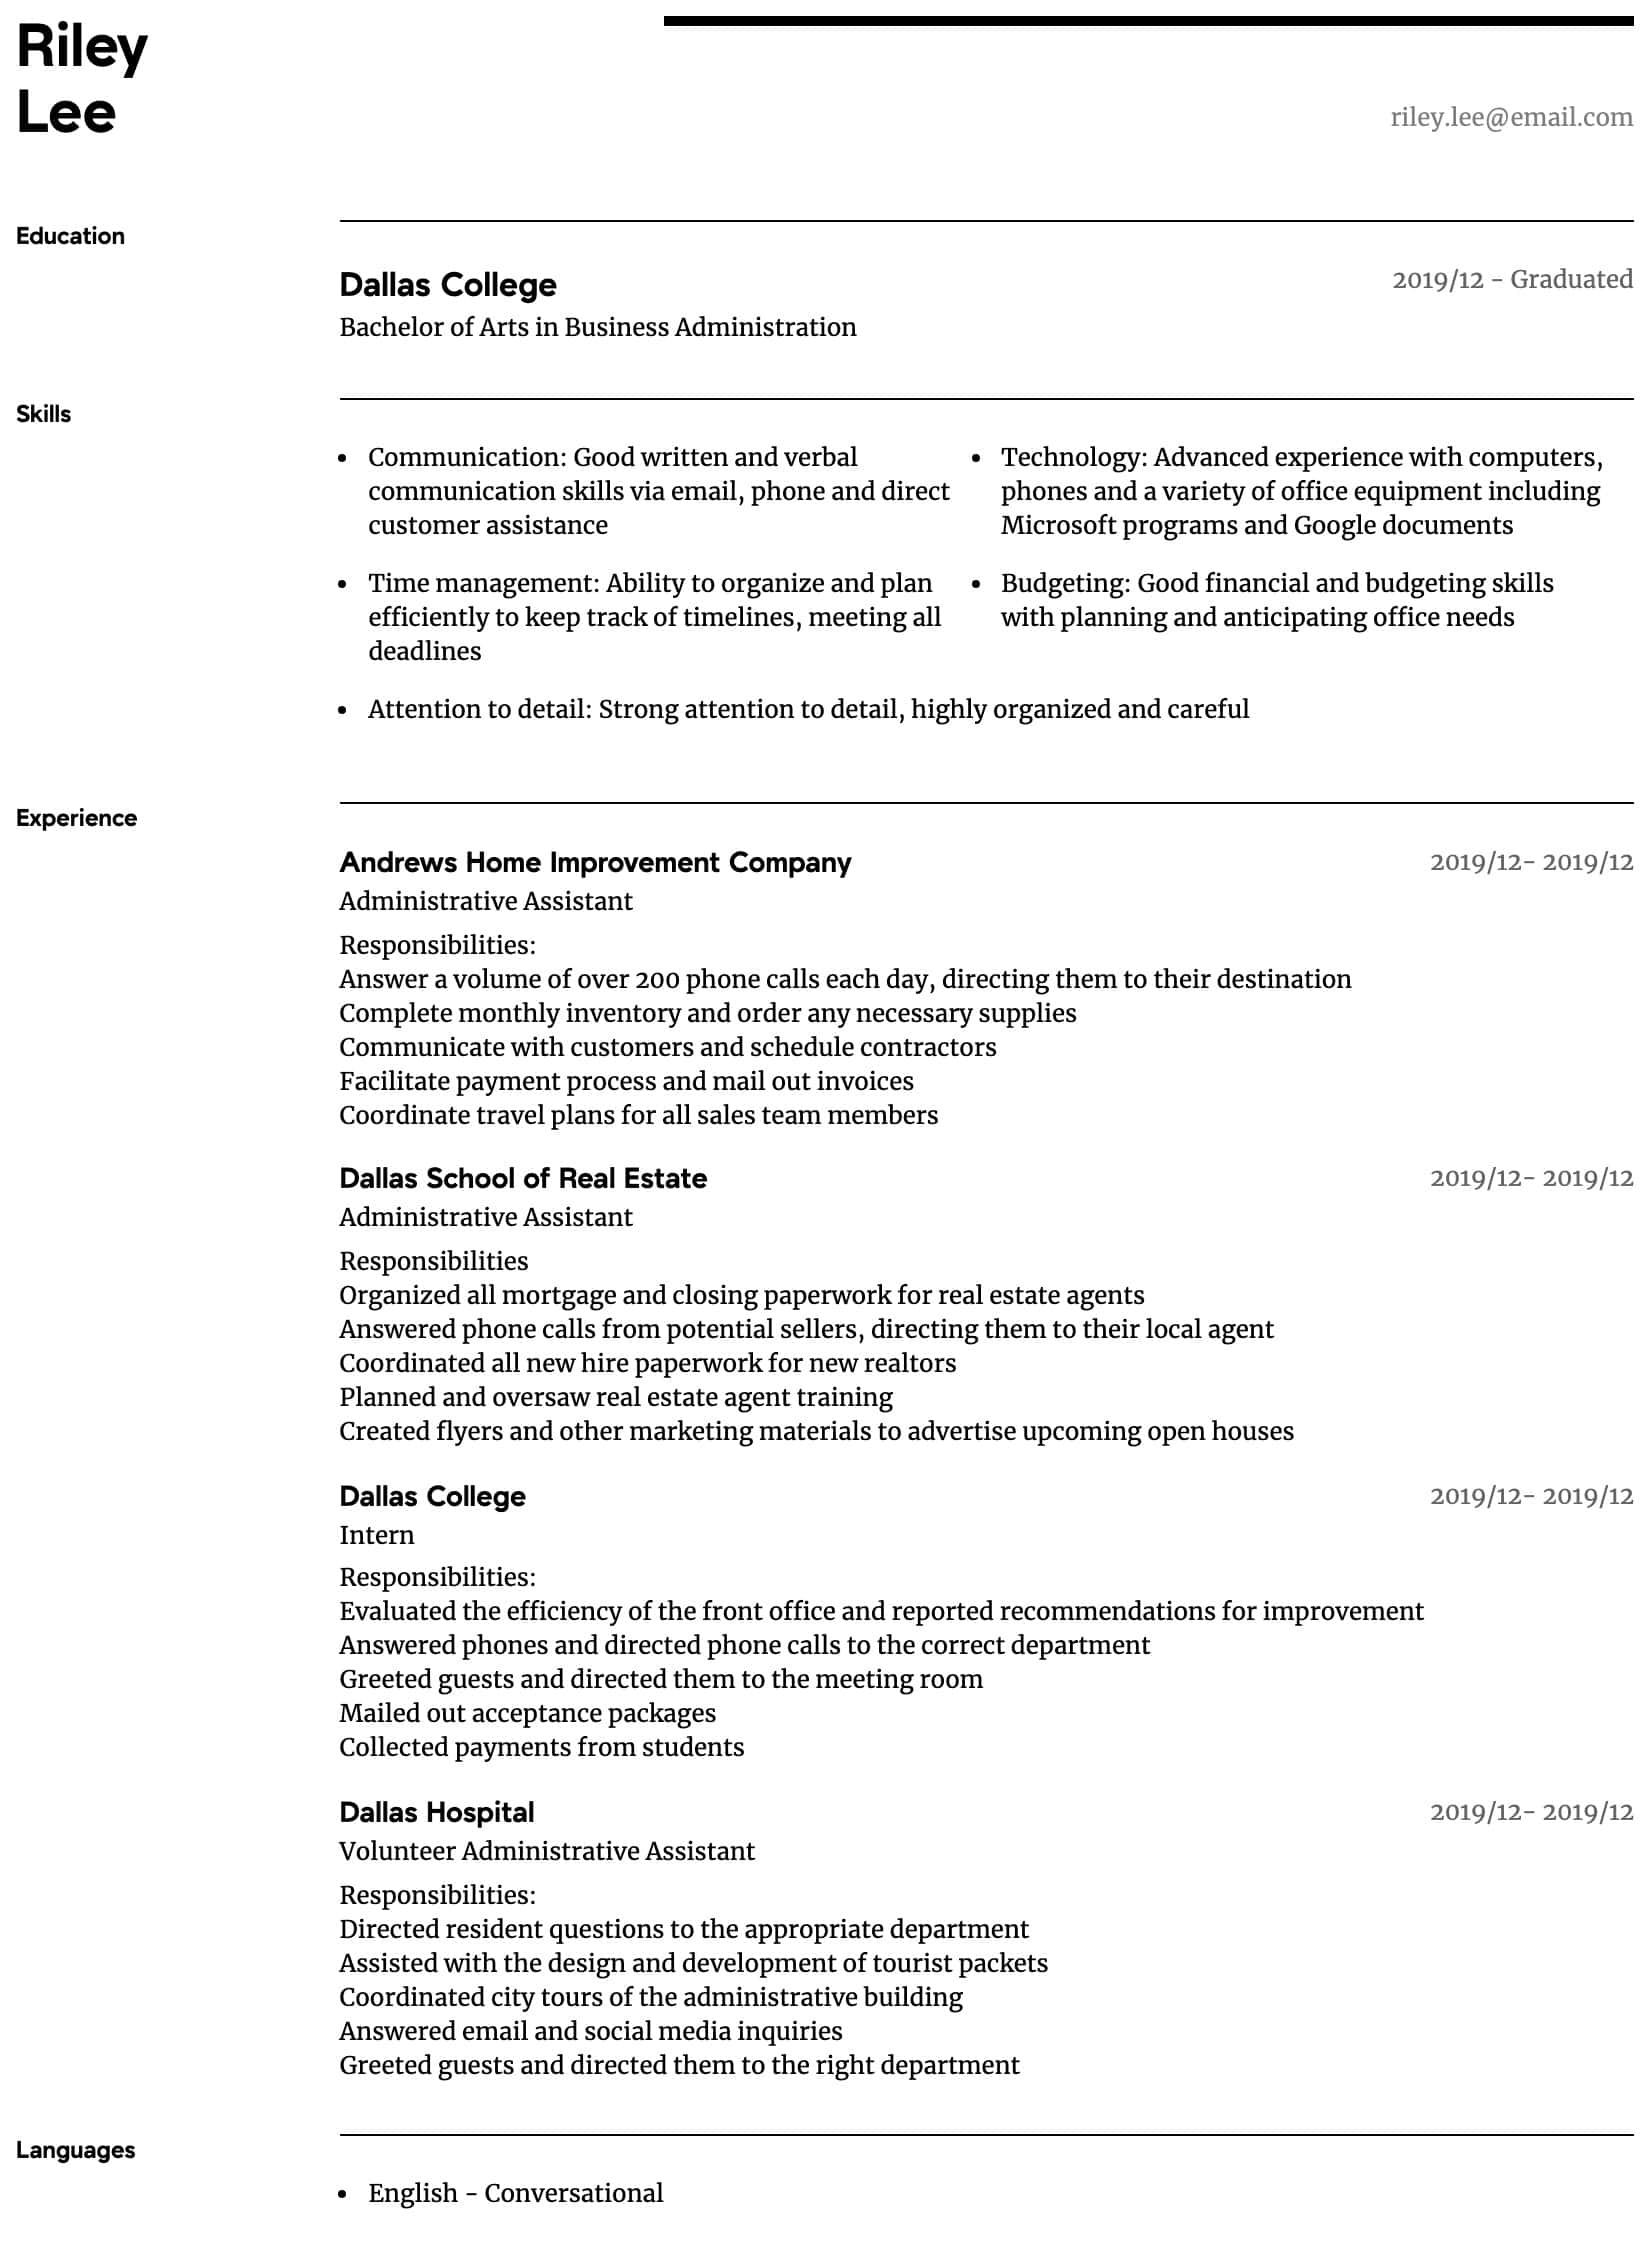 administrative assistant resume samples all experience levels sample intermediate Resume Administrative Assistant Resume Sample